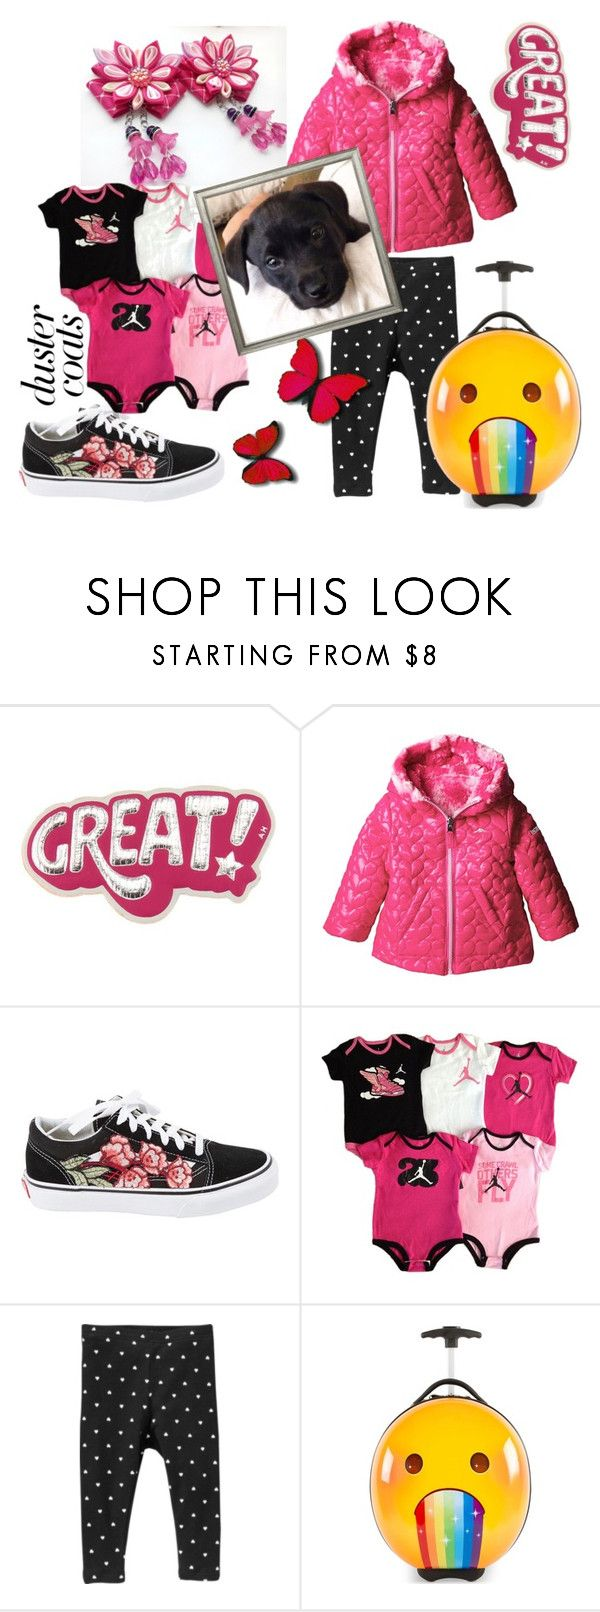 """What's Trending NOW in Kids Fashion». Kids fashion ideas. Trends, Tips, and Style for kids."" by airin-flowers ❤ liked on Polyvore featuring Anya Hindmarch, Pacific Trail, Vans, NIKE, Old Navy, Heys and Trowbridge"